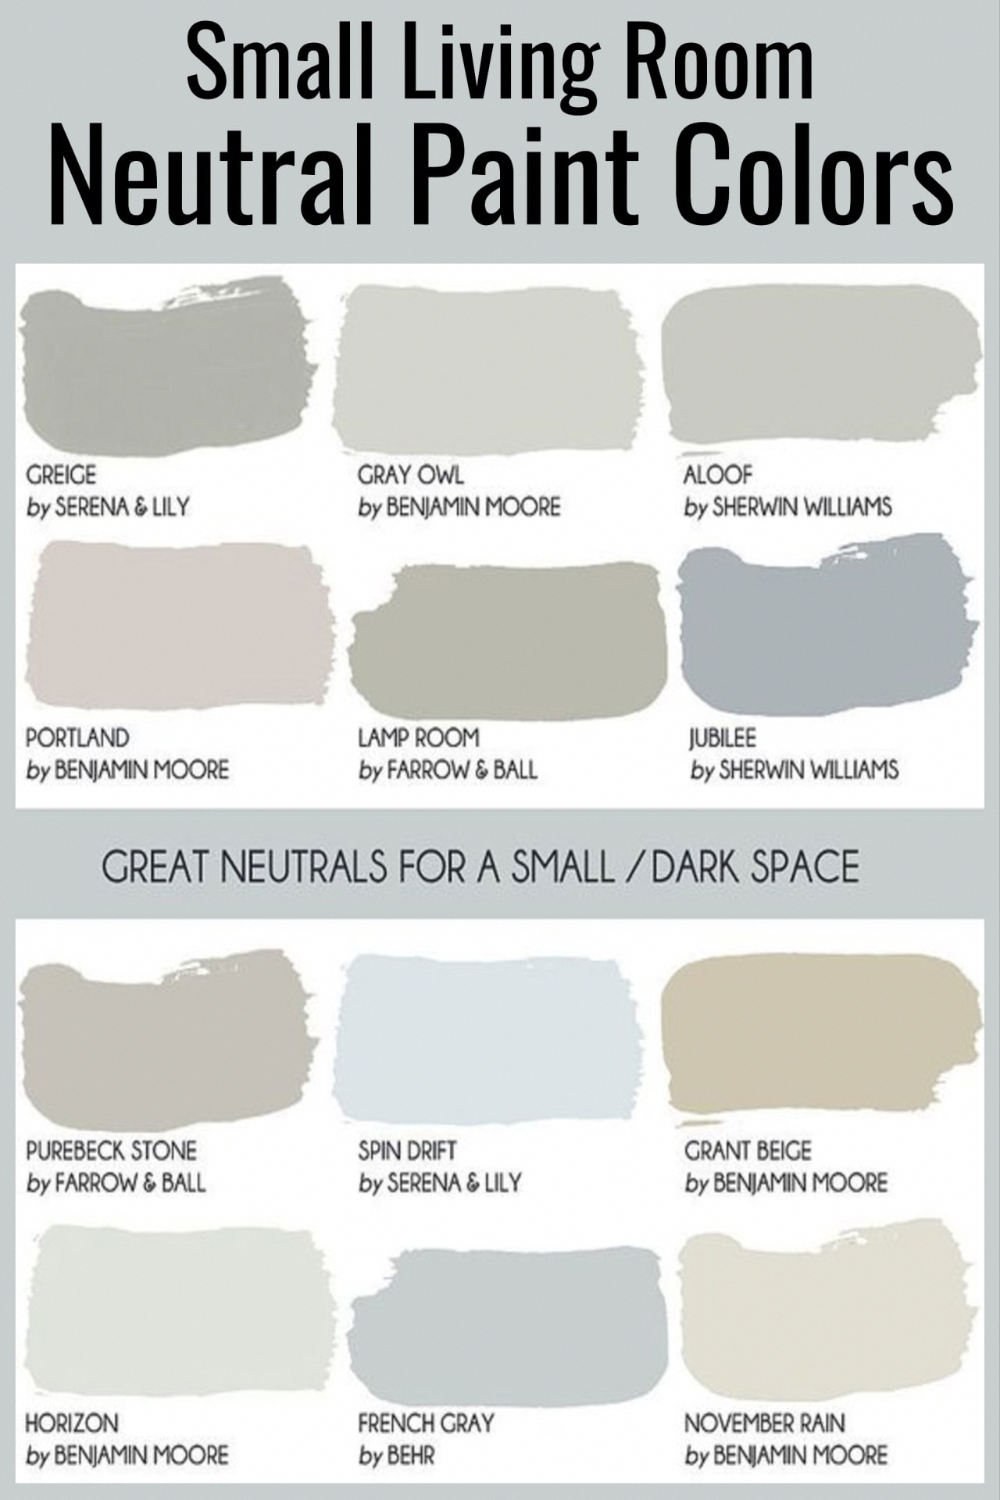 Small Living Room Paint Color Ideas Neutral Living Room Paint Color Ideas For Your Walls To Ma In 2020 Living Room Grey Neutral Living Room Paint Neutral Living Room